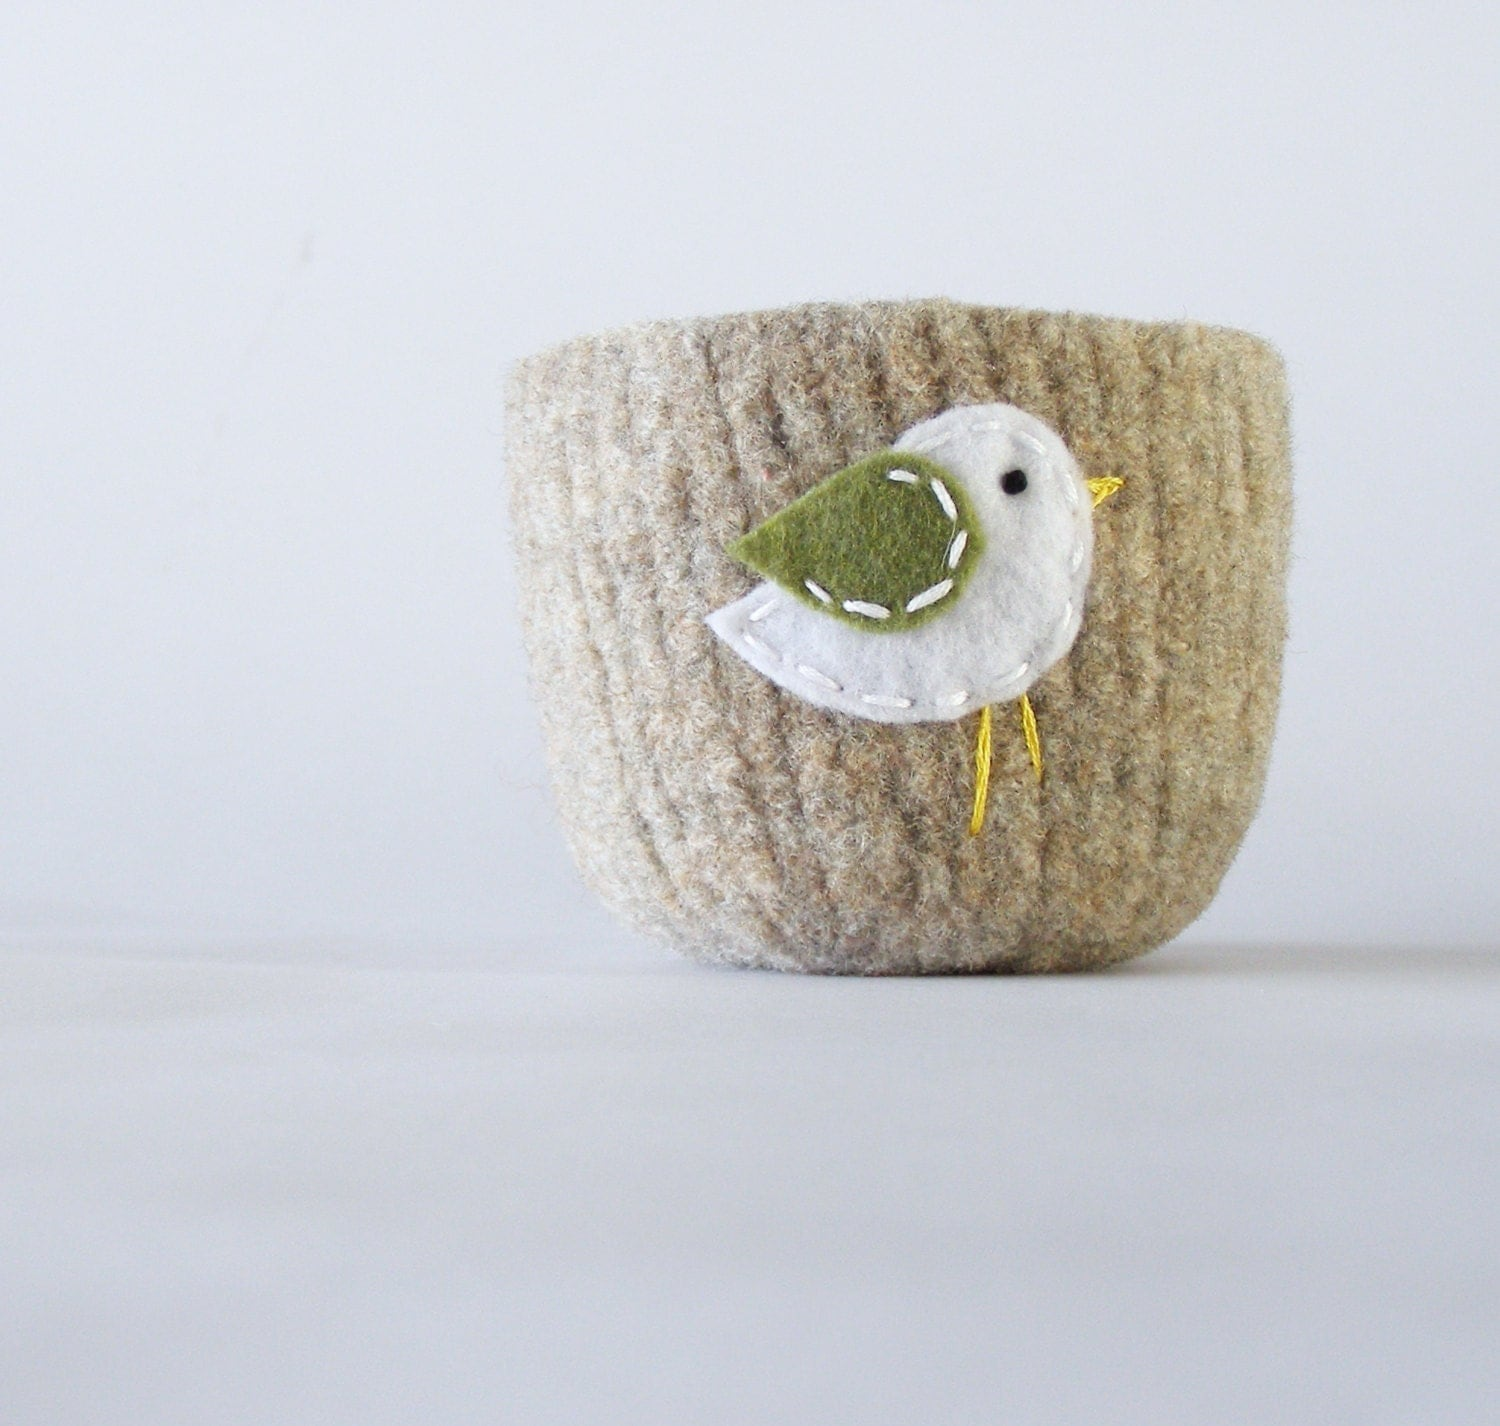 felted bowl - beige wool bowl with sage green and white bird -  spring inspired container for jewelry or air plants - theFelterie